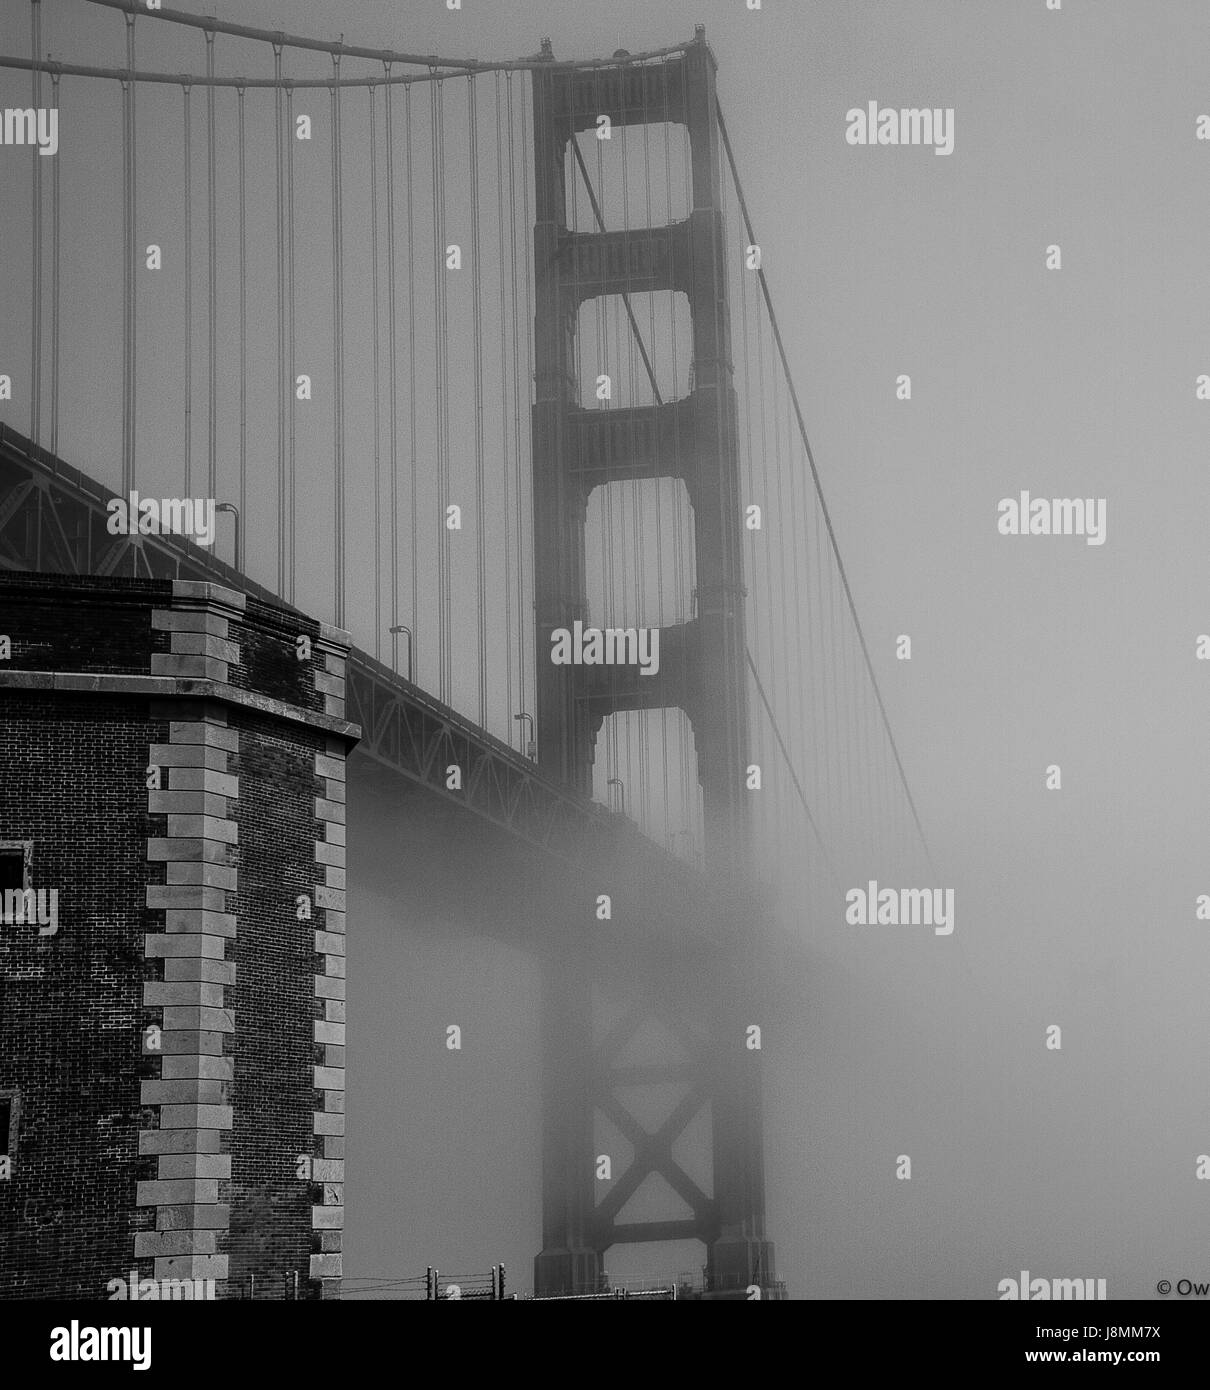 Golden Gate Bridge - San Francisco, Californie Photo Stock